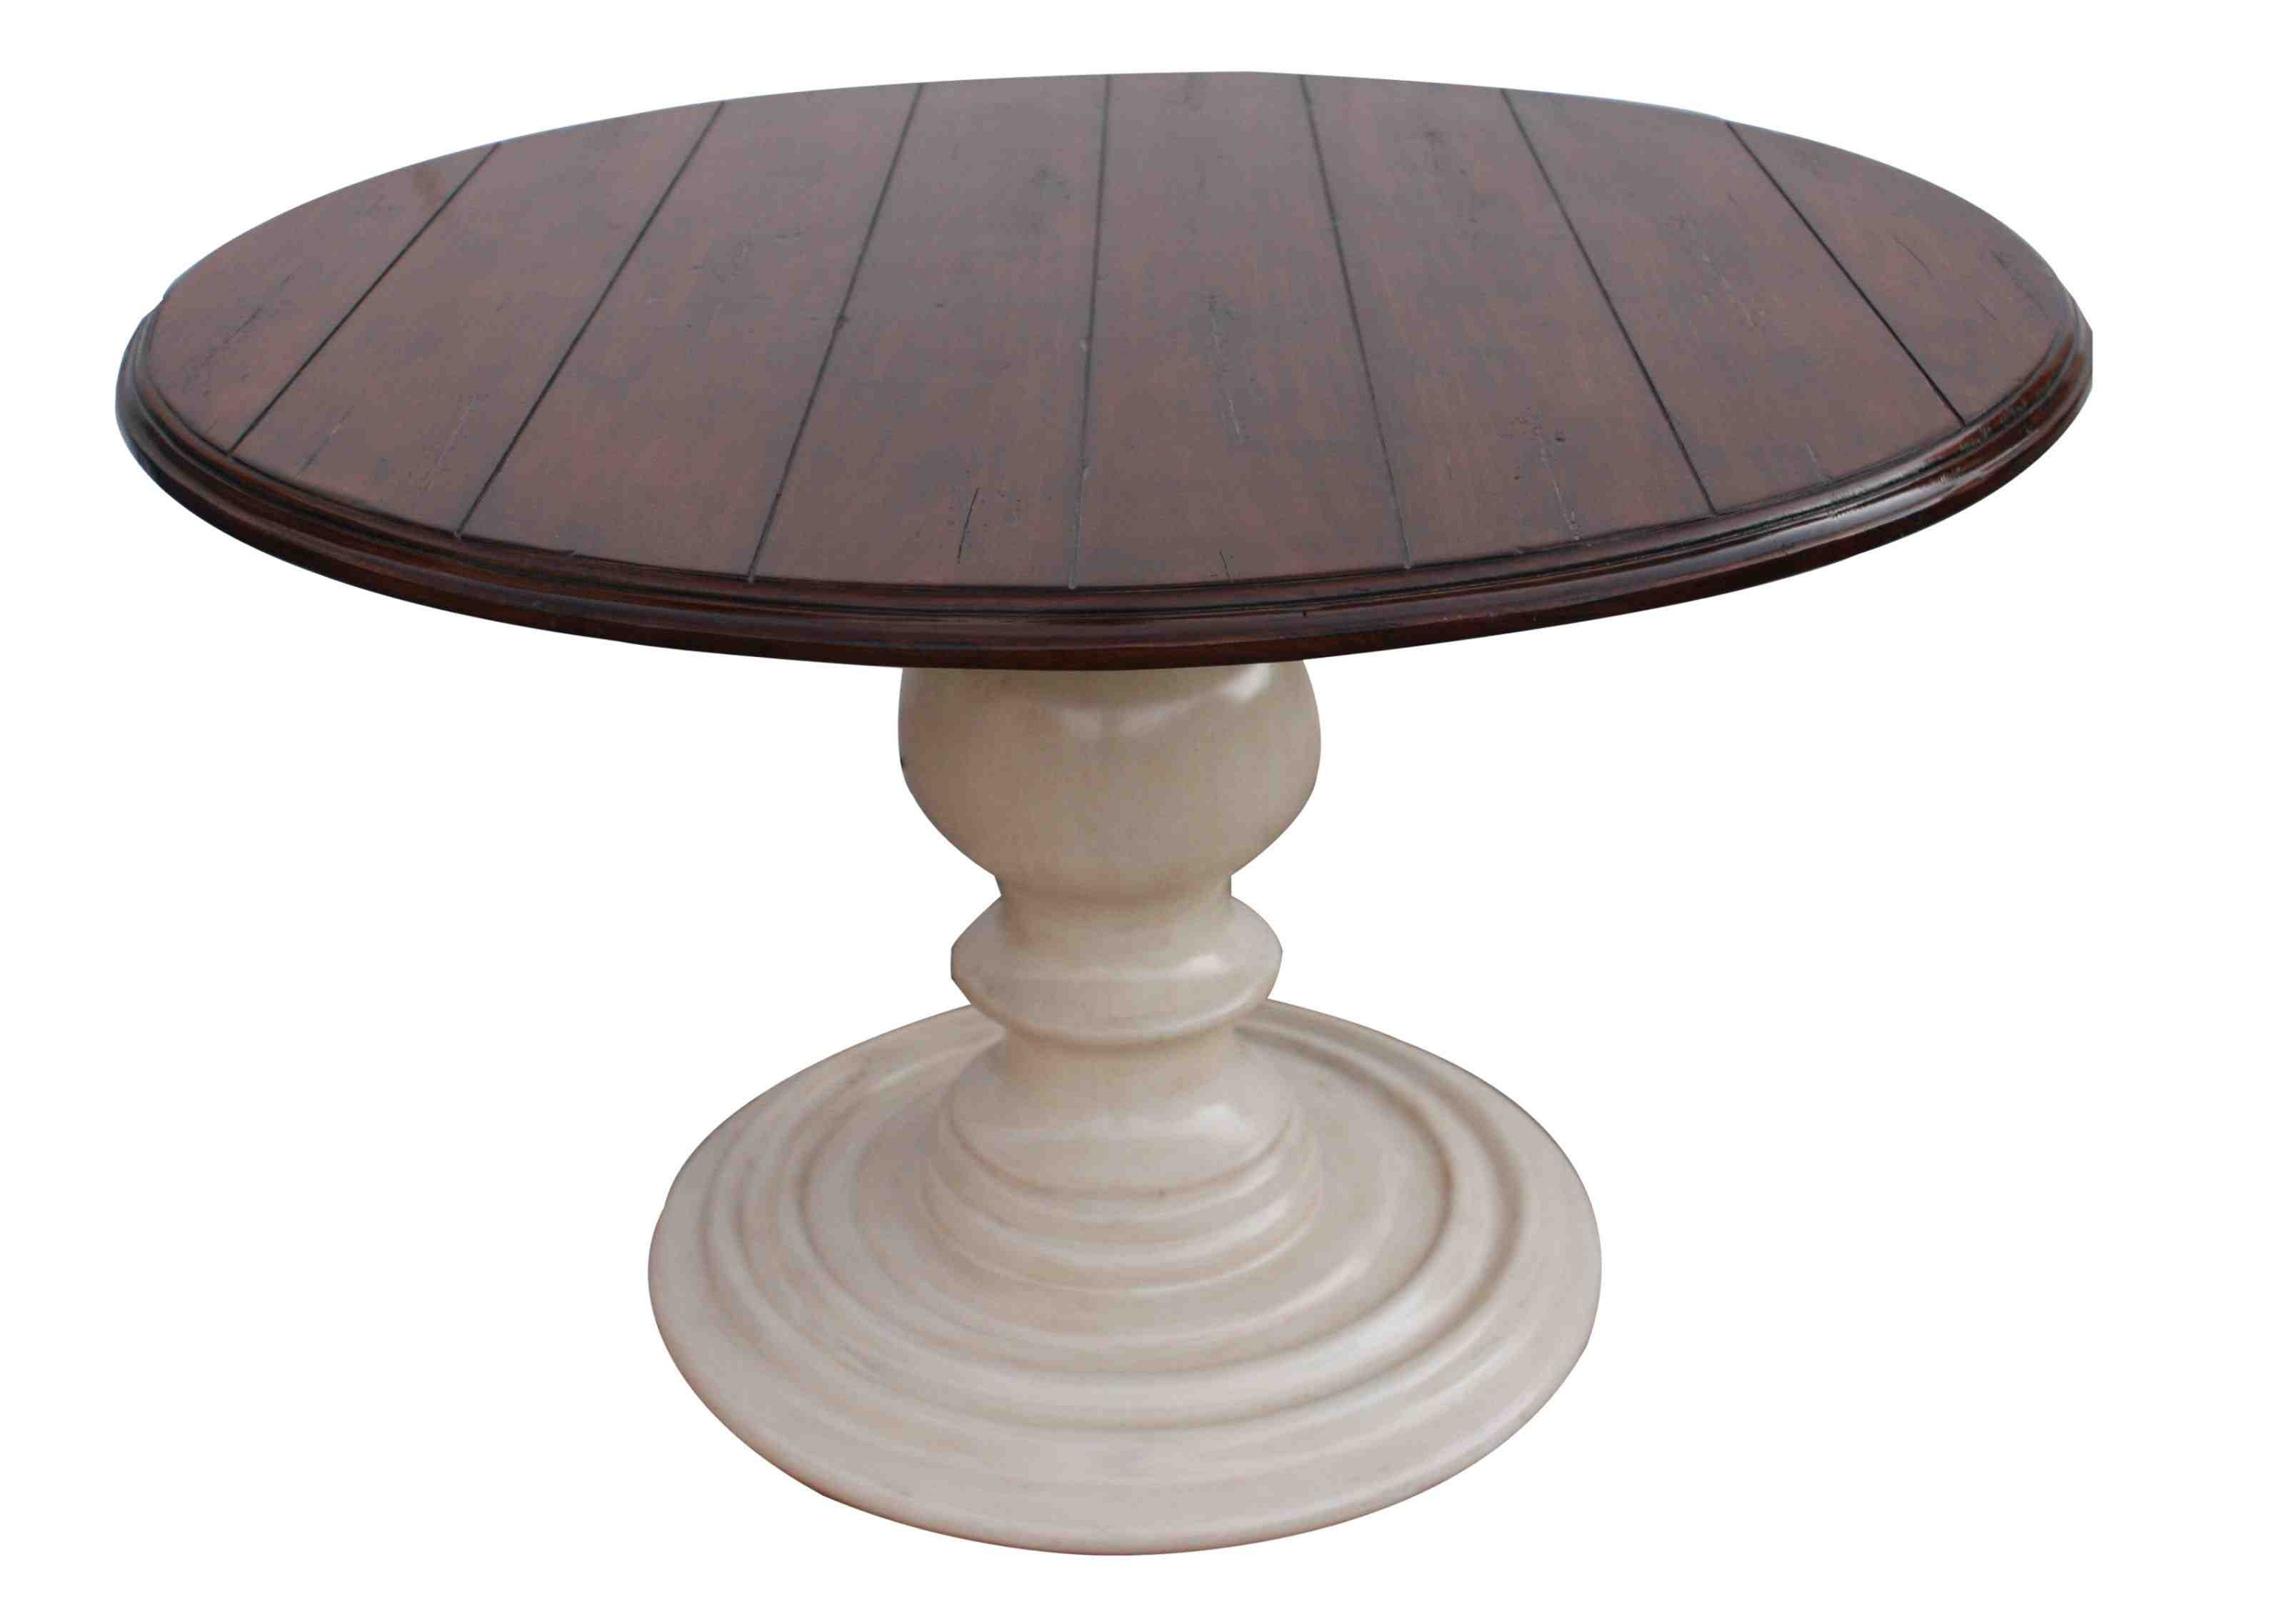 Gorgeous pedestal dining table for dining room with round pedestal dining table